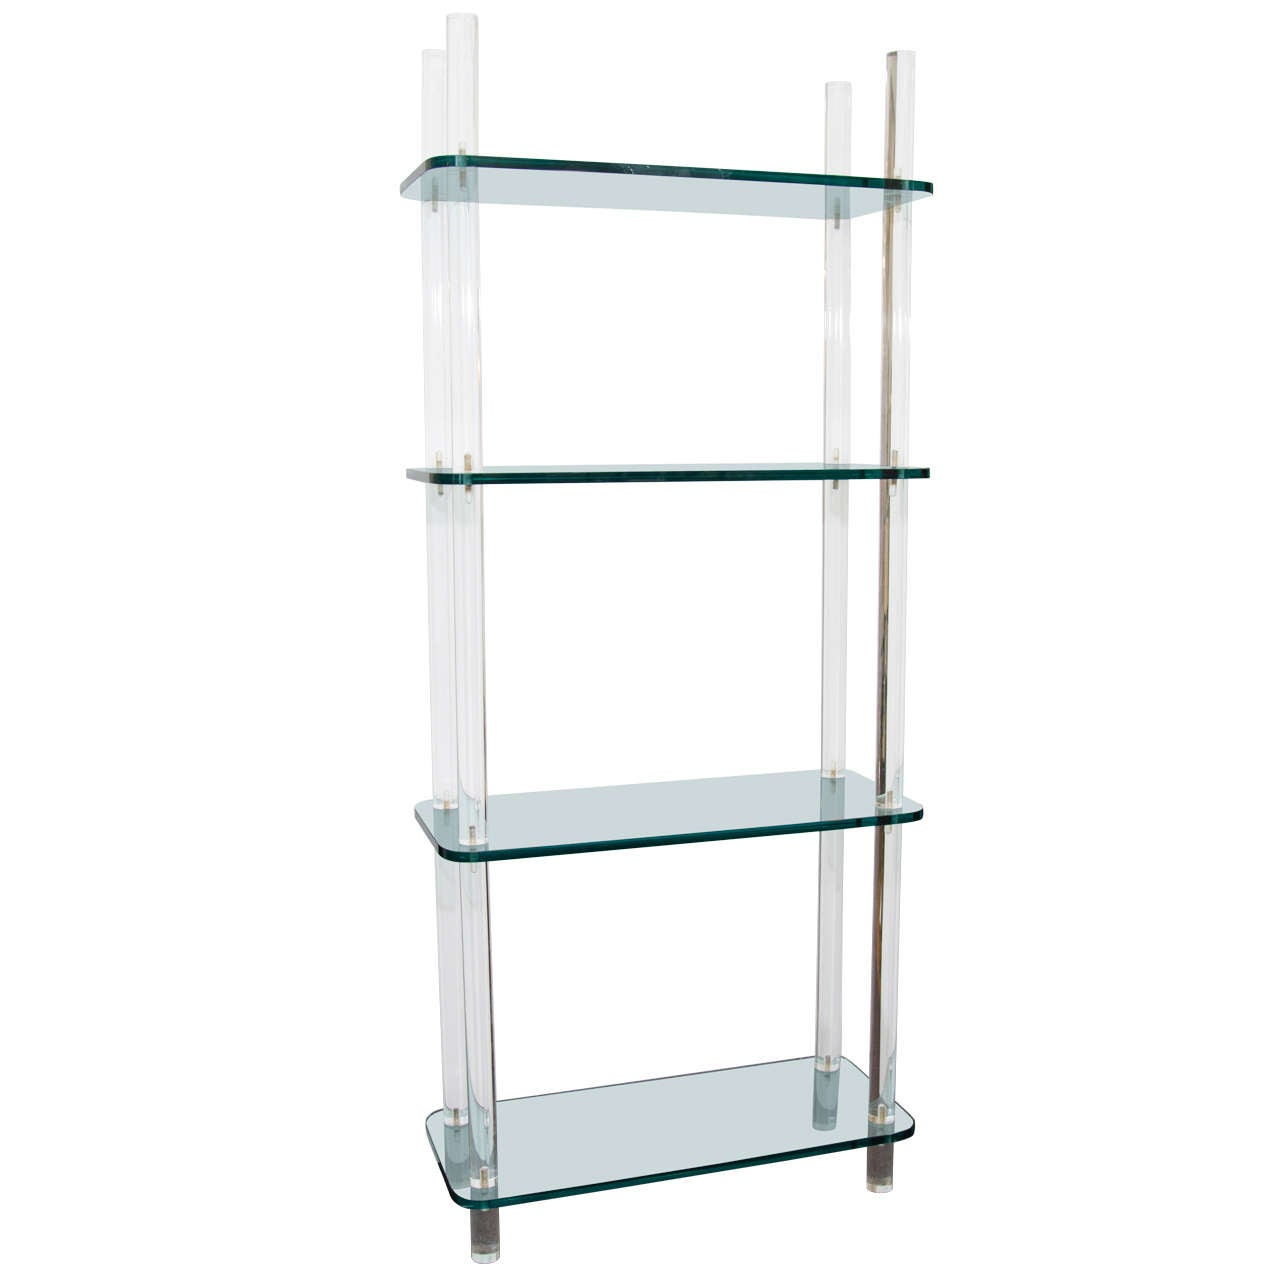 Midcentury Solid Lucite and Glass Bookshelf or Bookcase. at 1stdibs